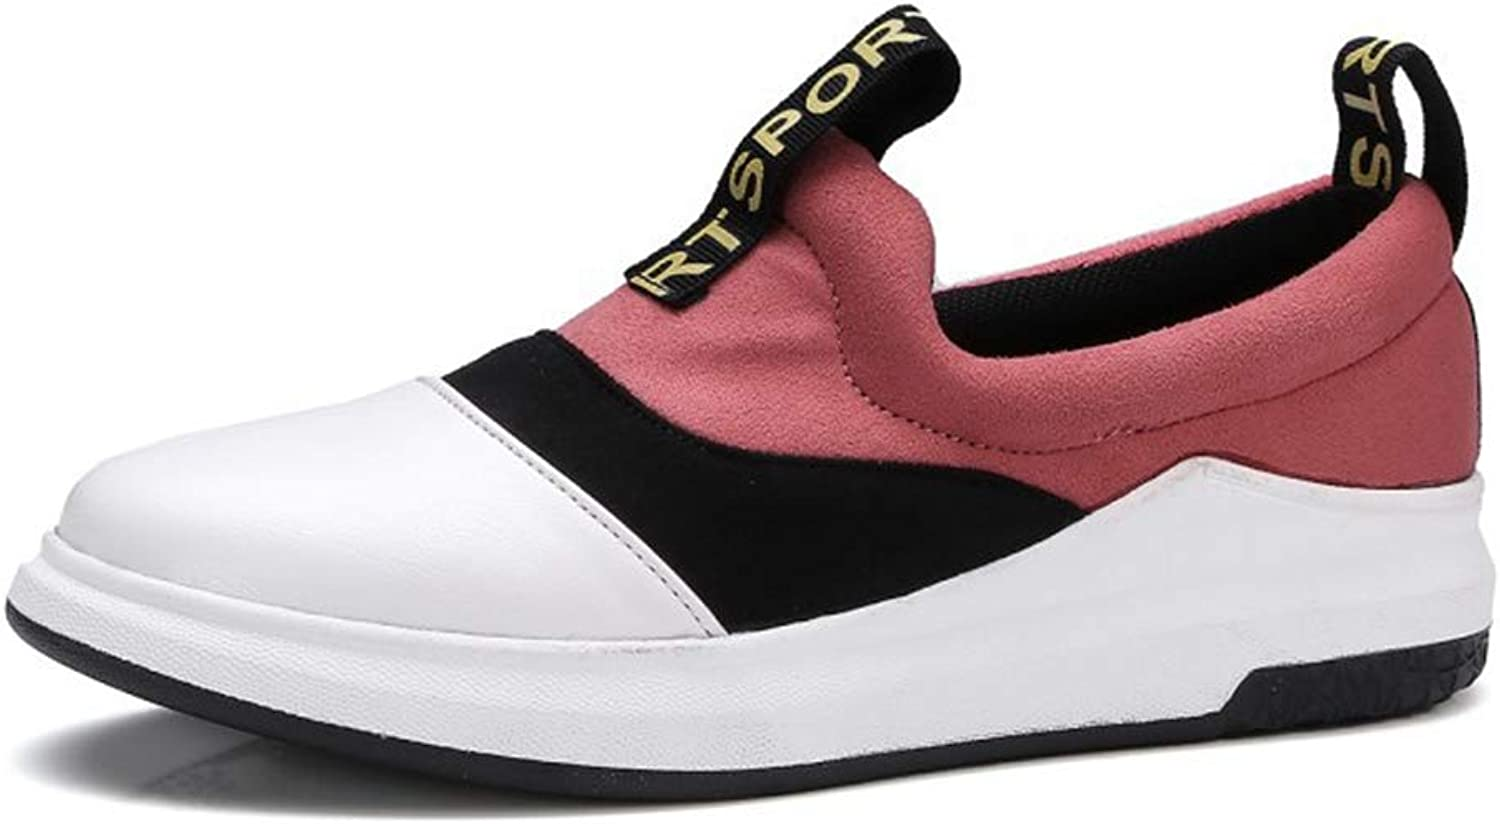 GIY Women's Wedge Platform Sneakers Pull On Slip On Loafers Casual Flats Walking shoes Casual Sports shoes